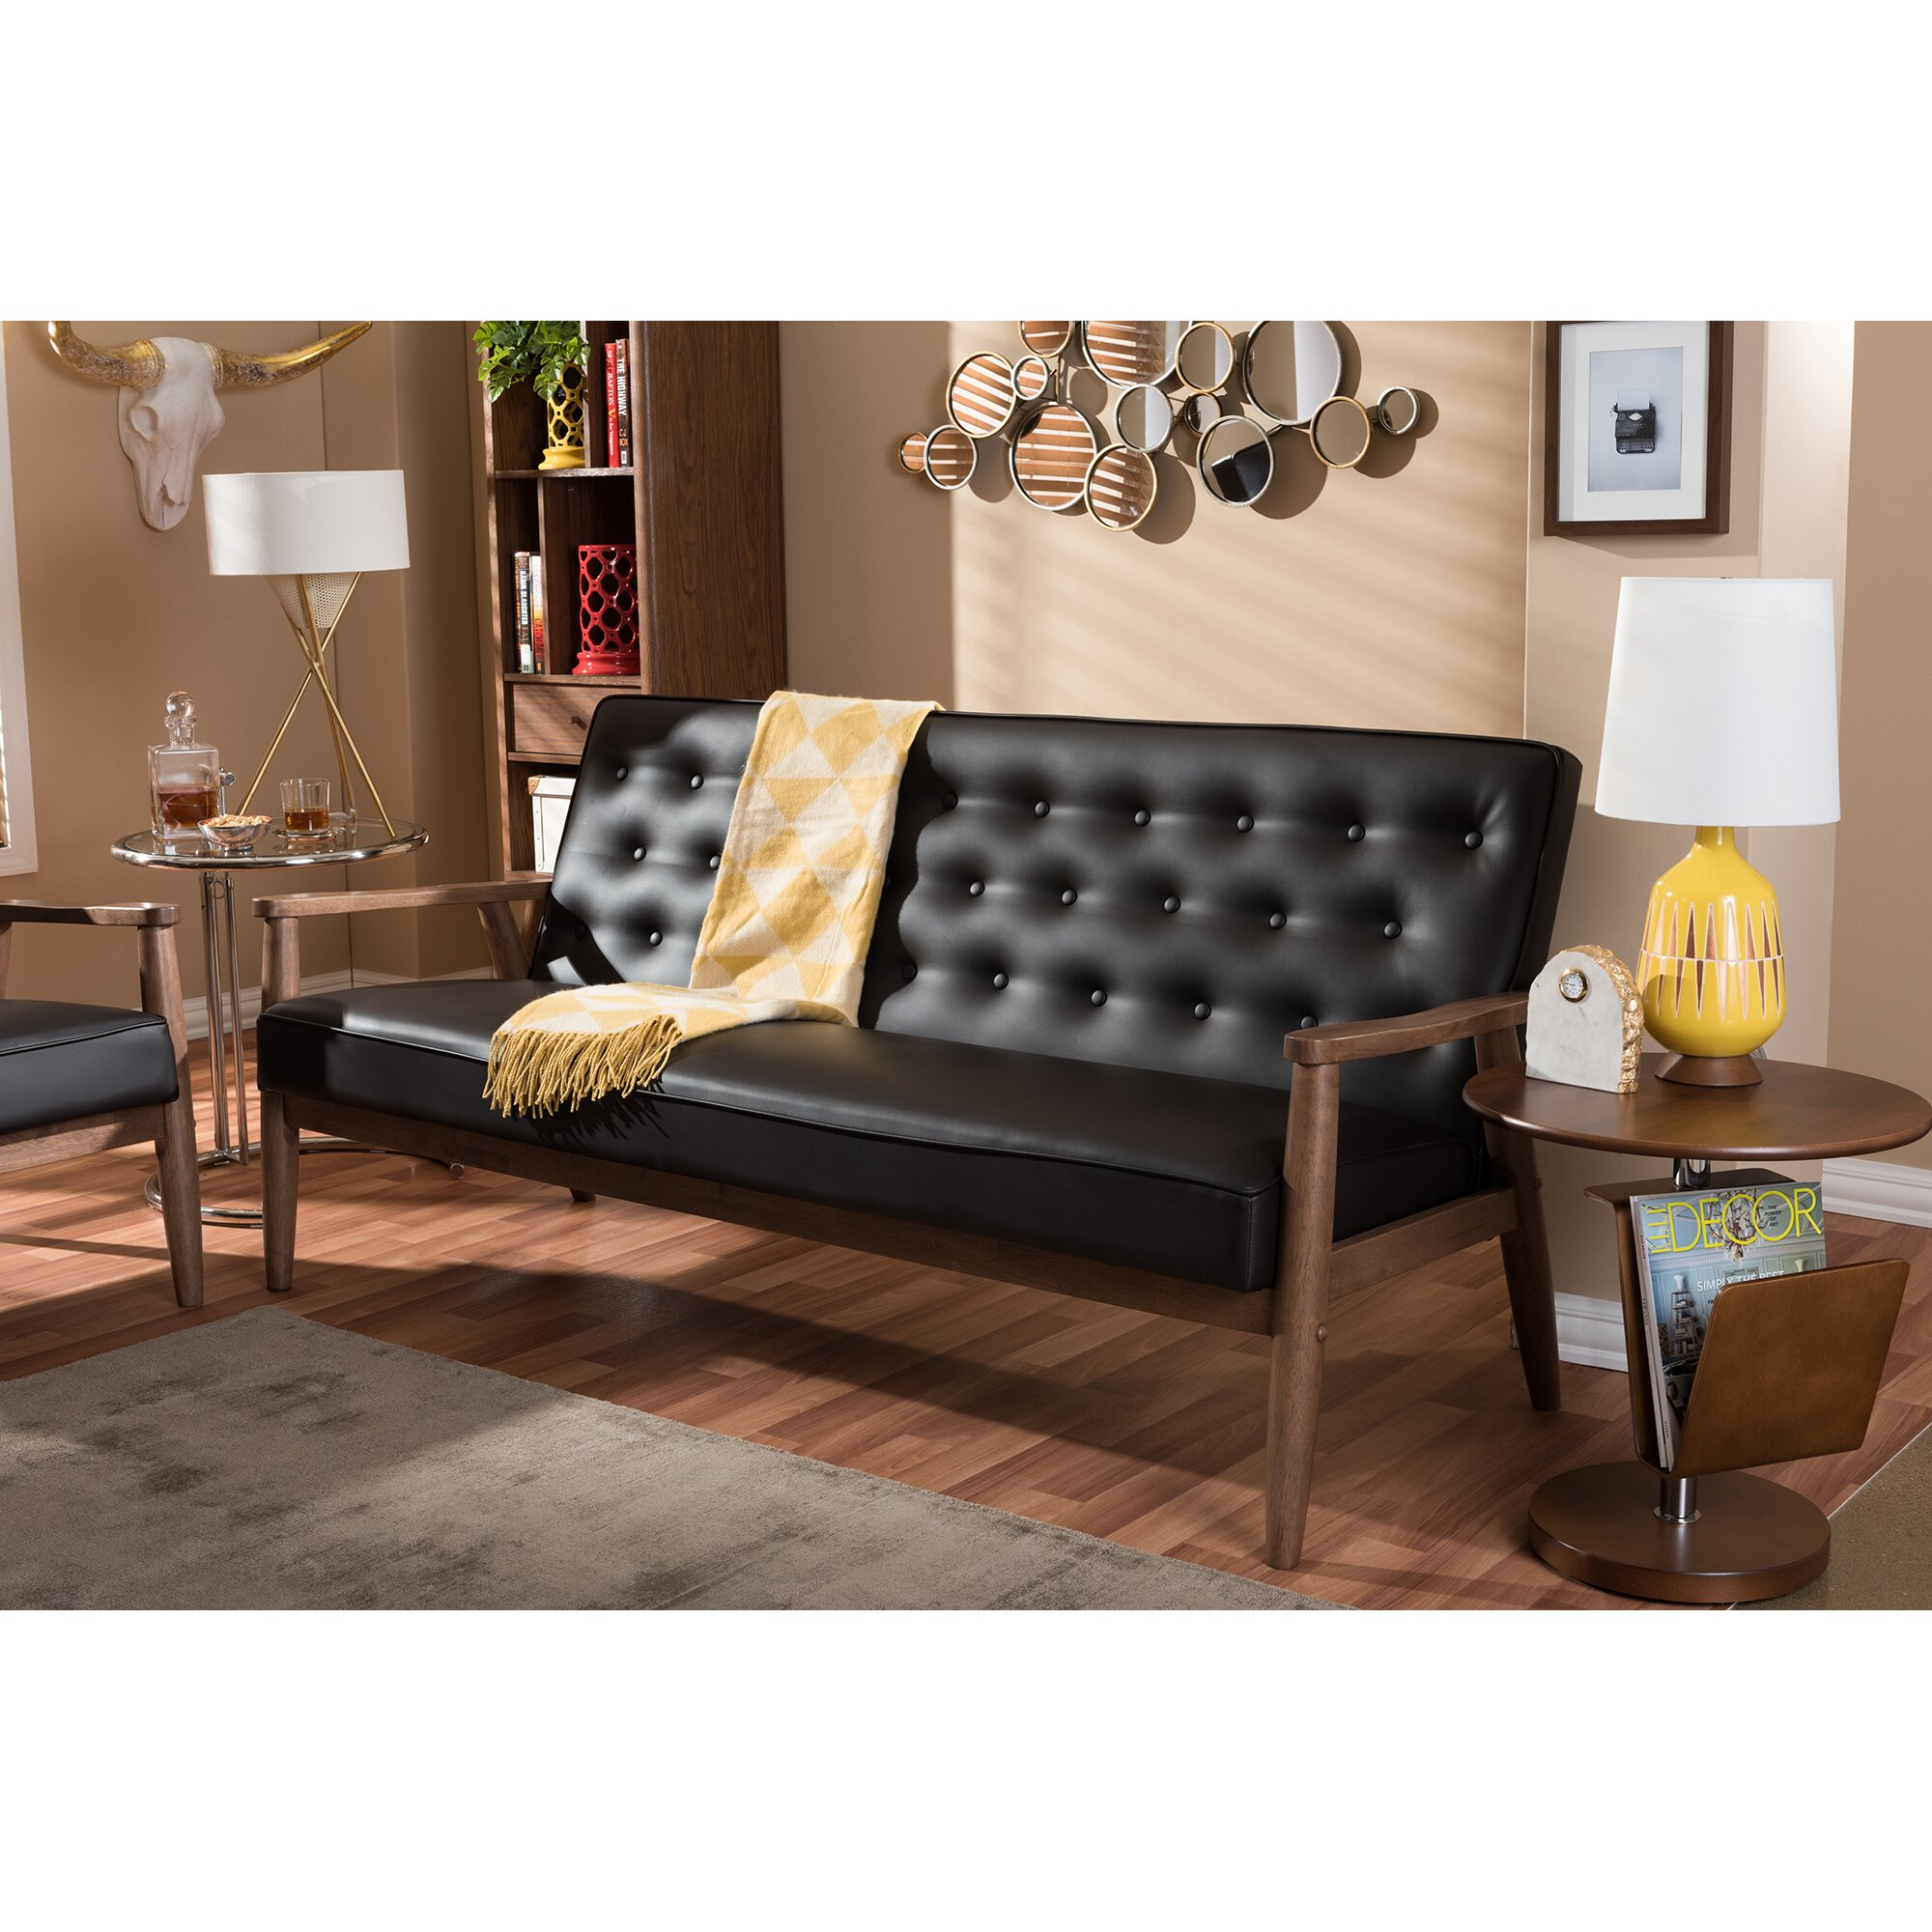 Vintage Upholstered Leather Sofa: Wholesale Interiors Baxton Studio Sofa & Reviews